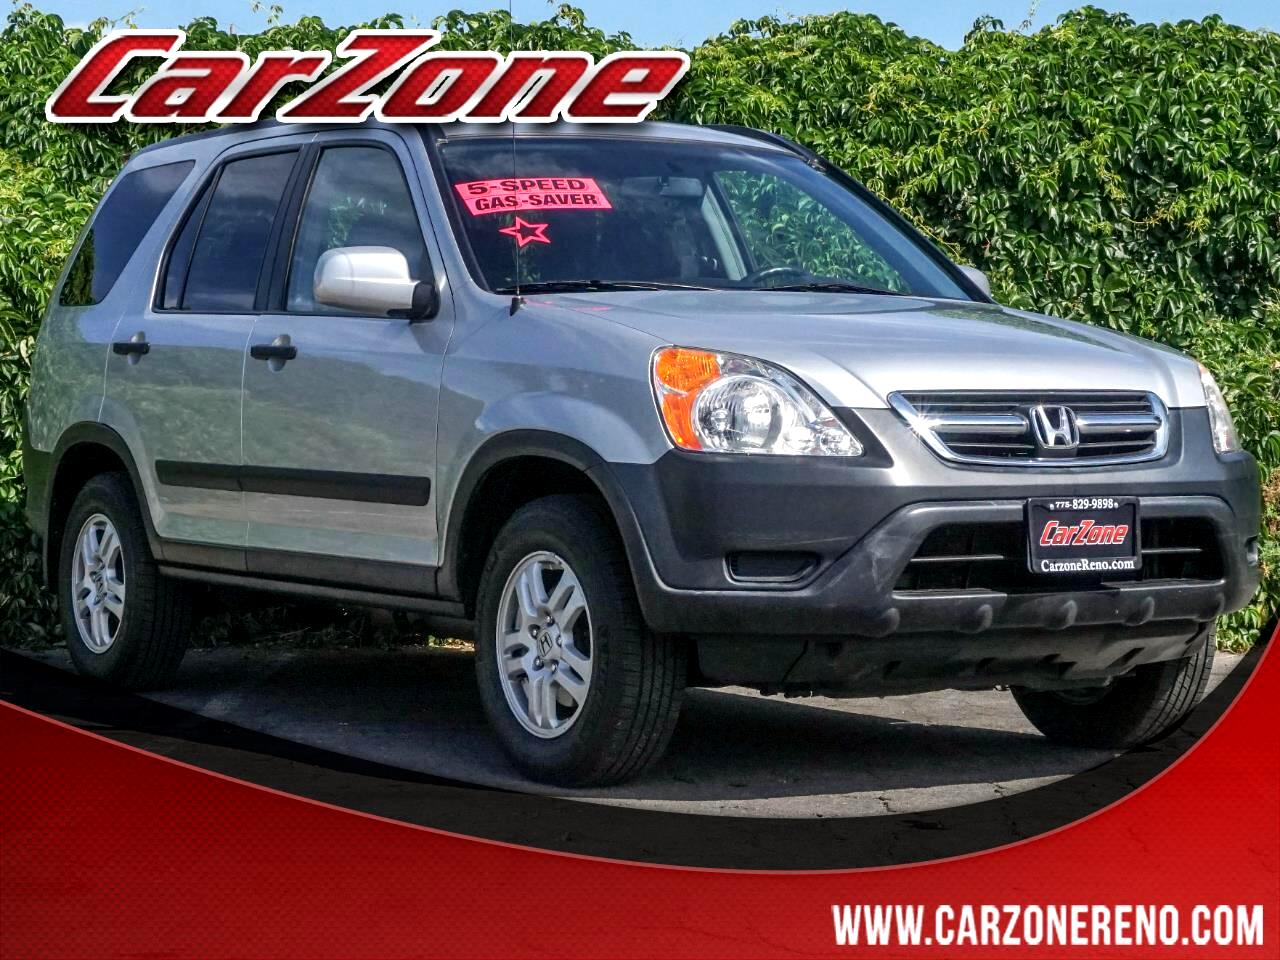 2003 Honda CR-V 4WD EX Manual